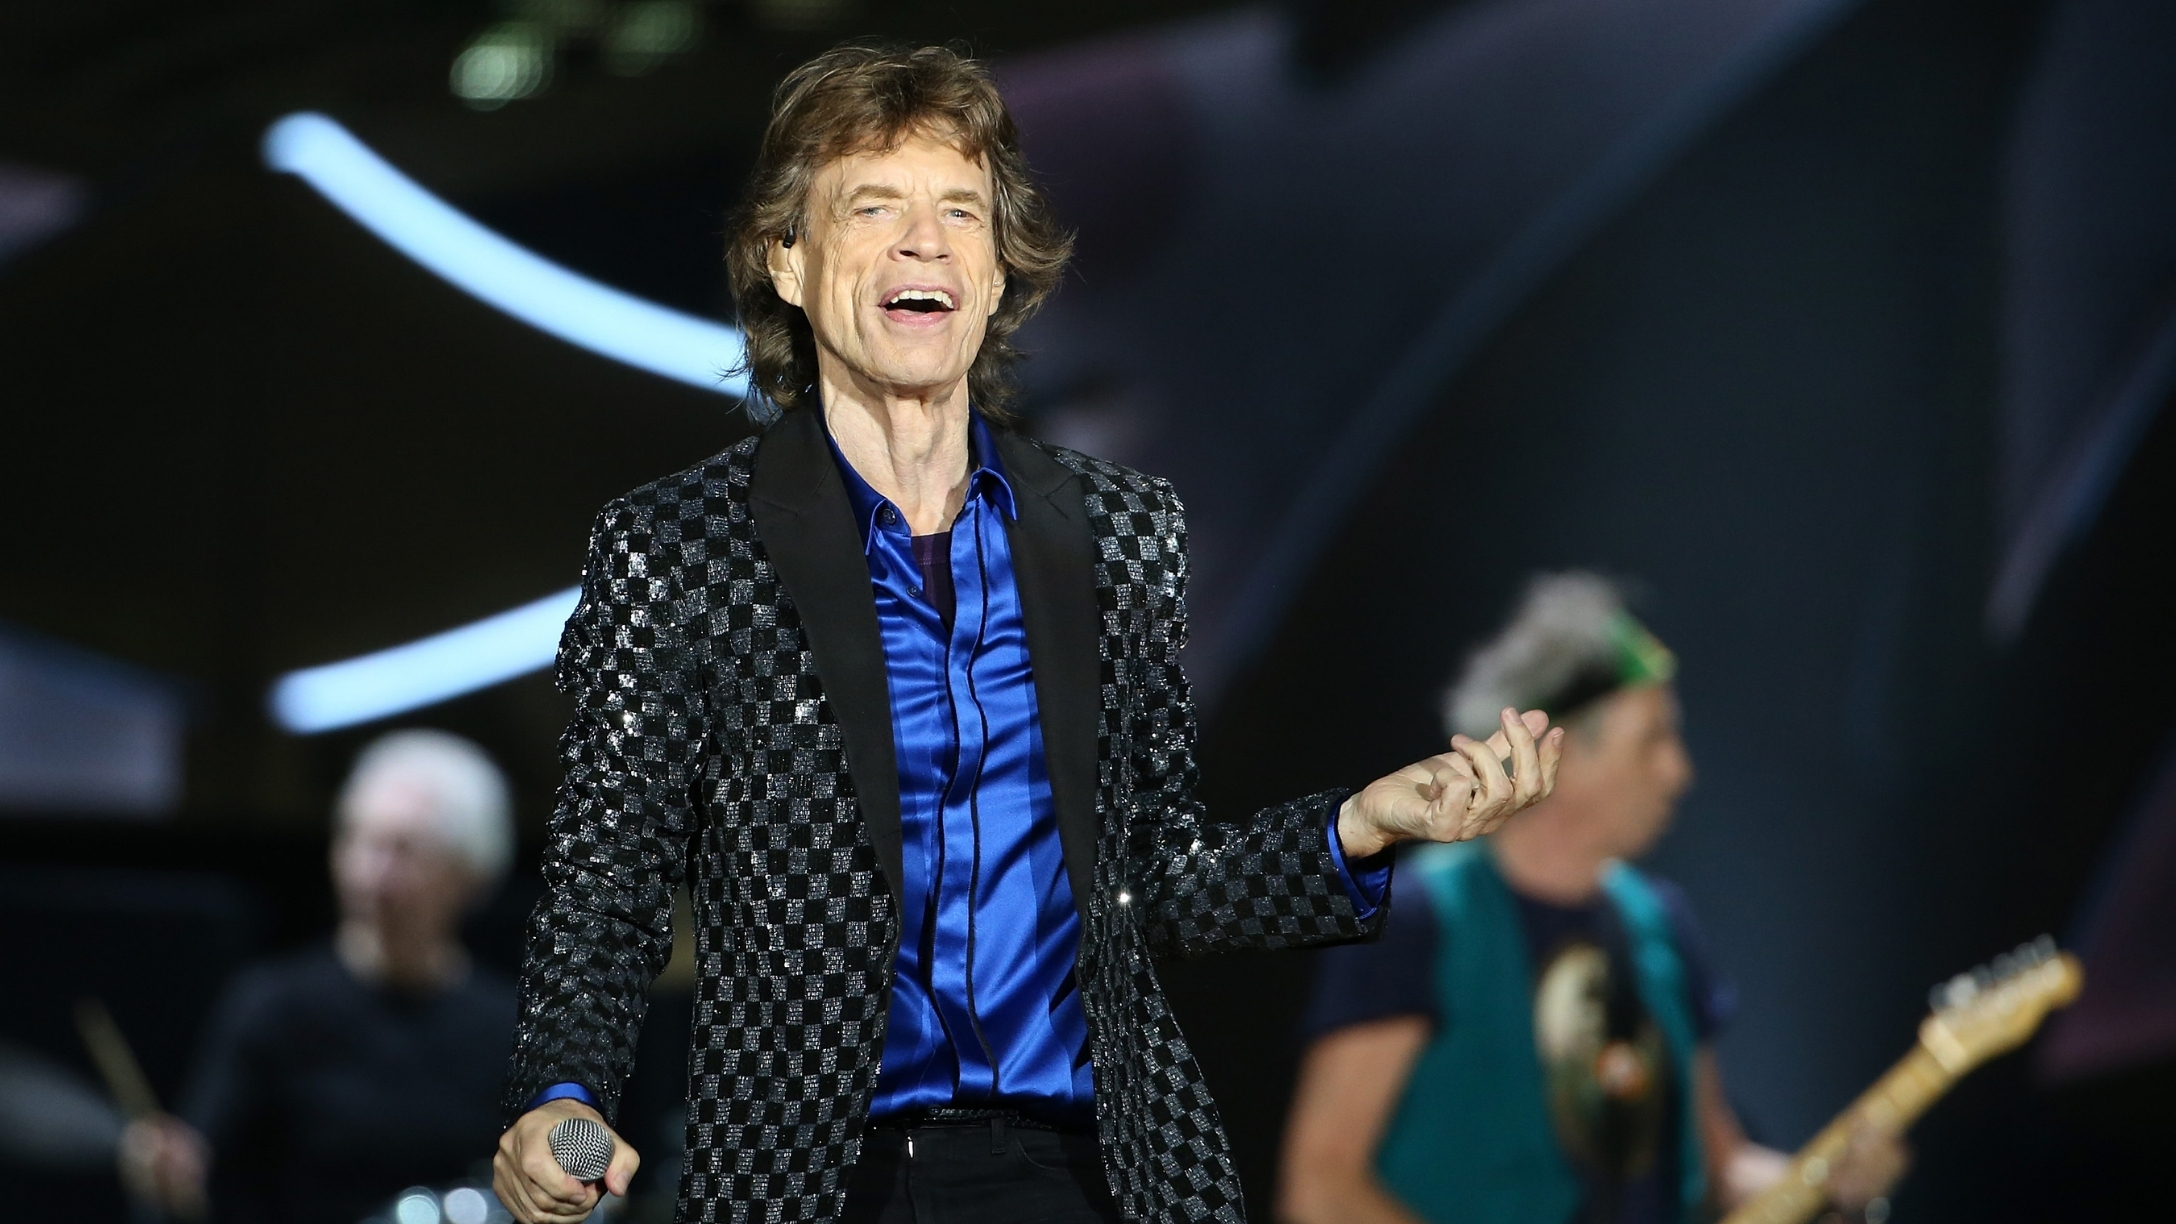 Mick Jagger, 77, Looks Like A Happy, Exuberant Dad In Pic With 4-Year-Old Son, Devereaux